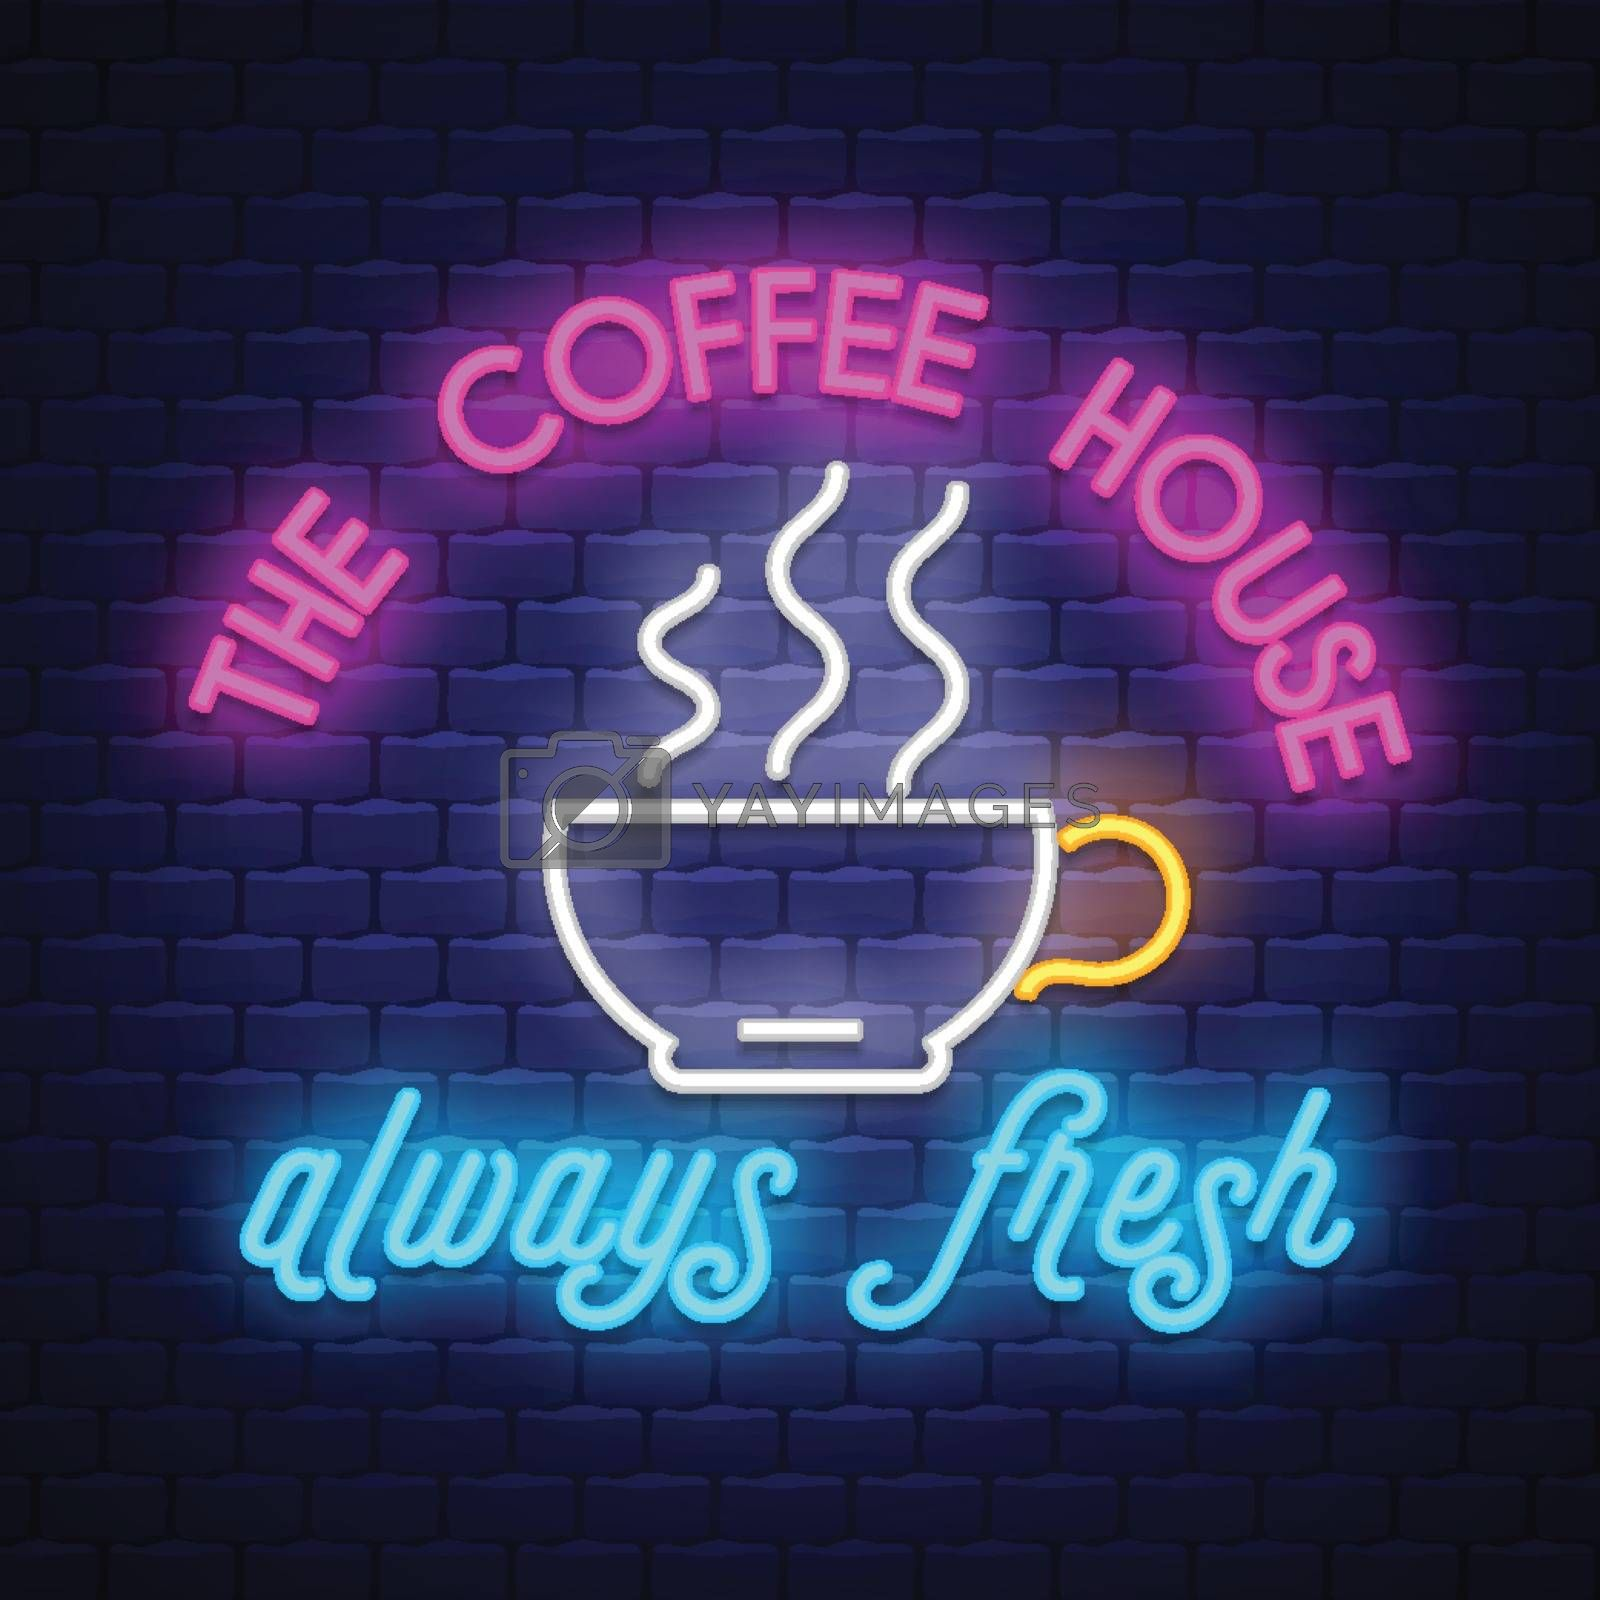 Coffee- Coffee Sign Vector. Tacos - Badge in neon style on brick wall background, design element, light banner, announcement neon signboard, night advensing. Vector Illustration